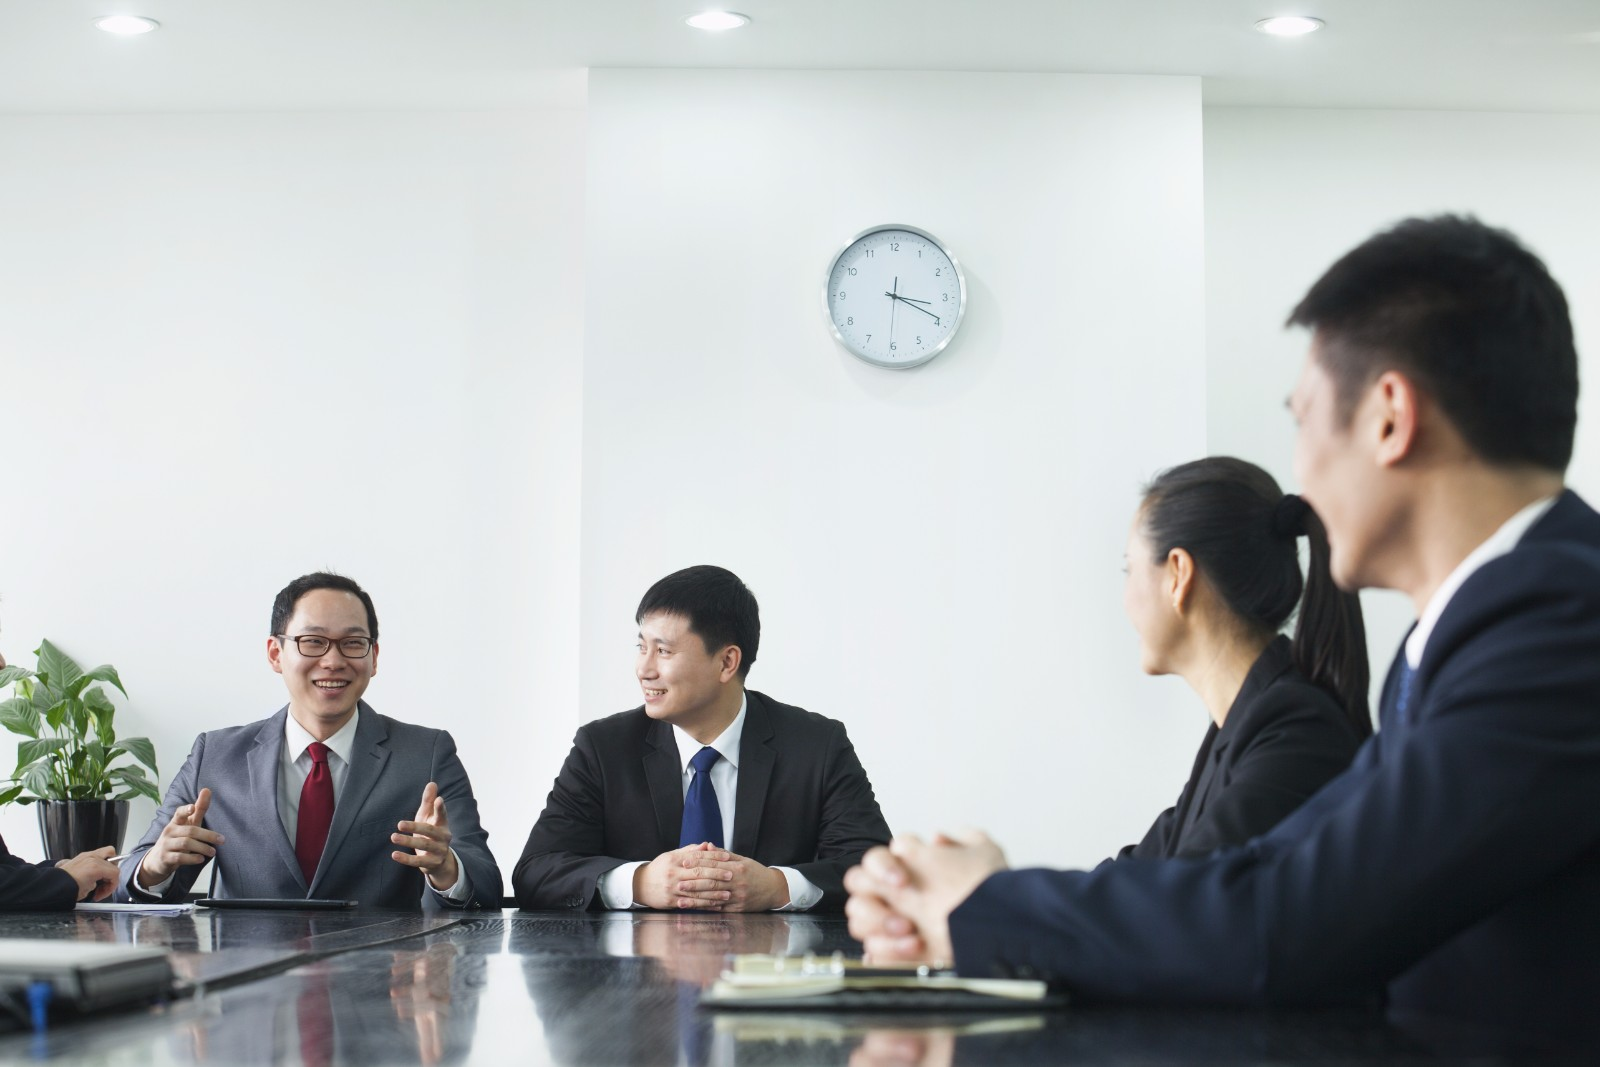 Korean business culture and etiquette